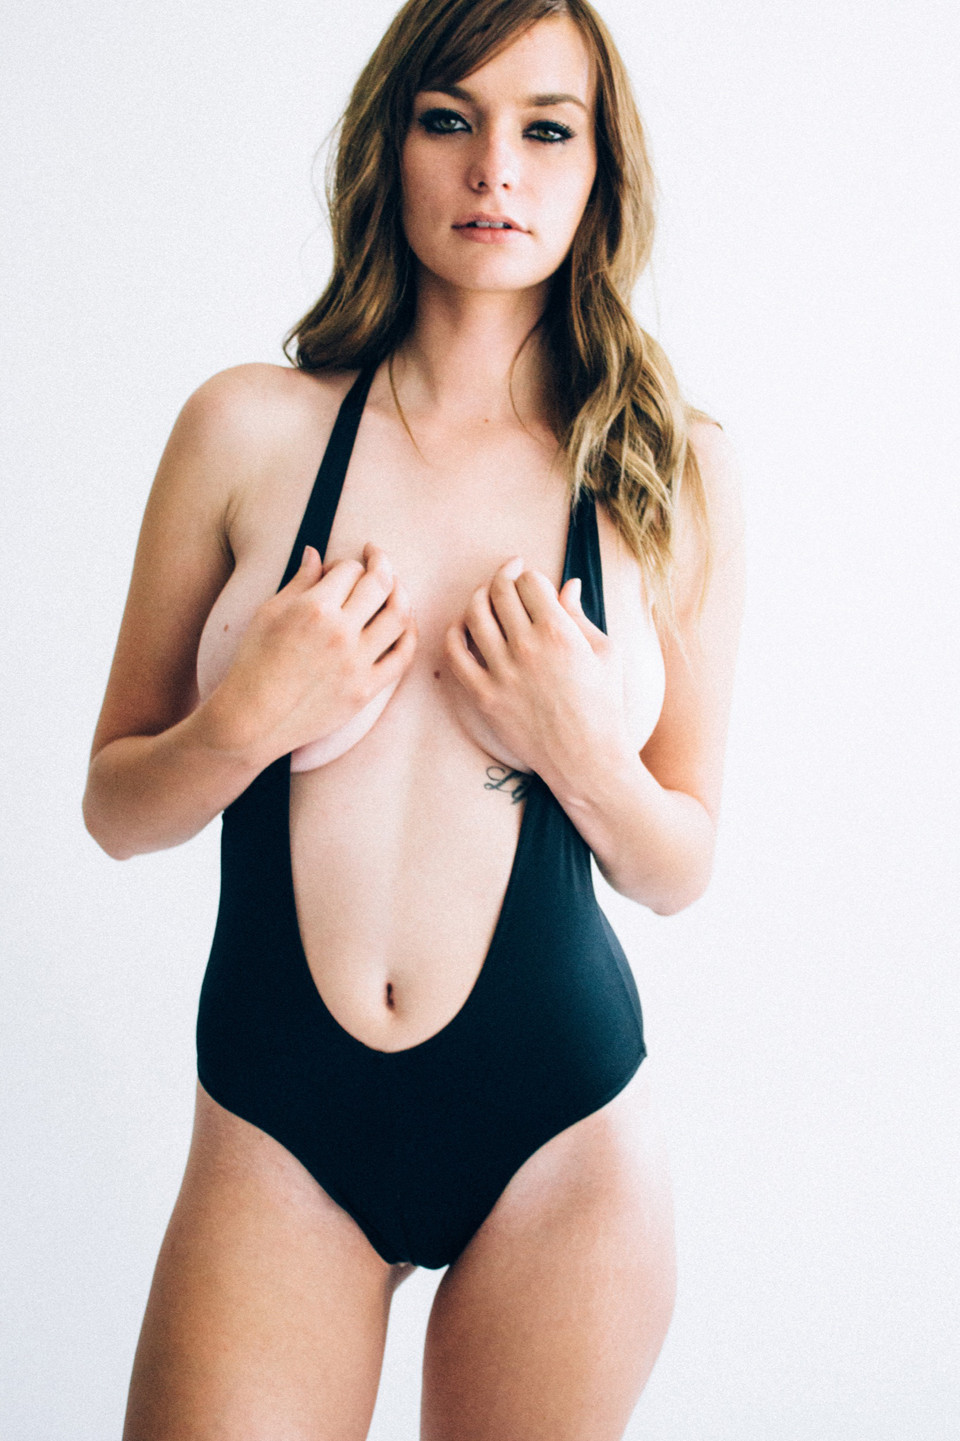 Pictures Courtney Barnum naked (88 photos), Topless, Cleavage, Instagram, swimsuit 2017